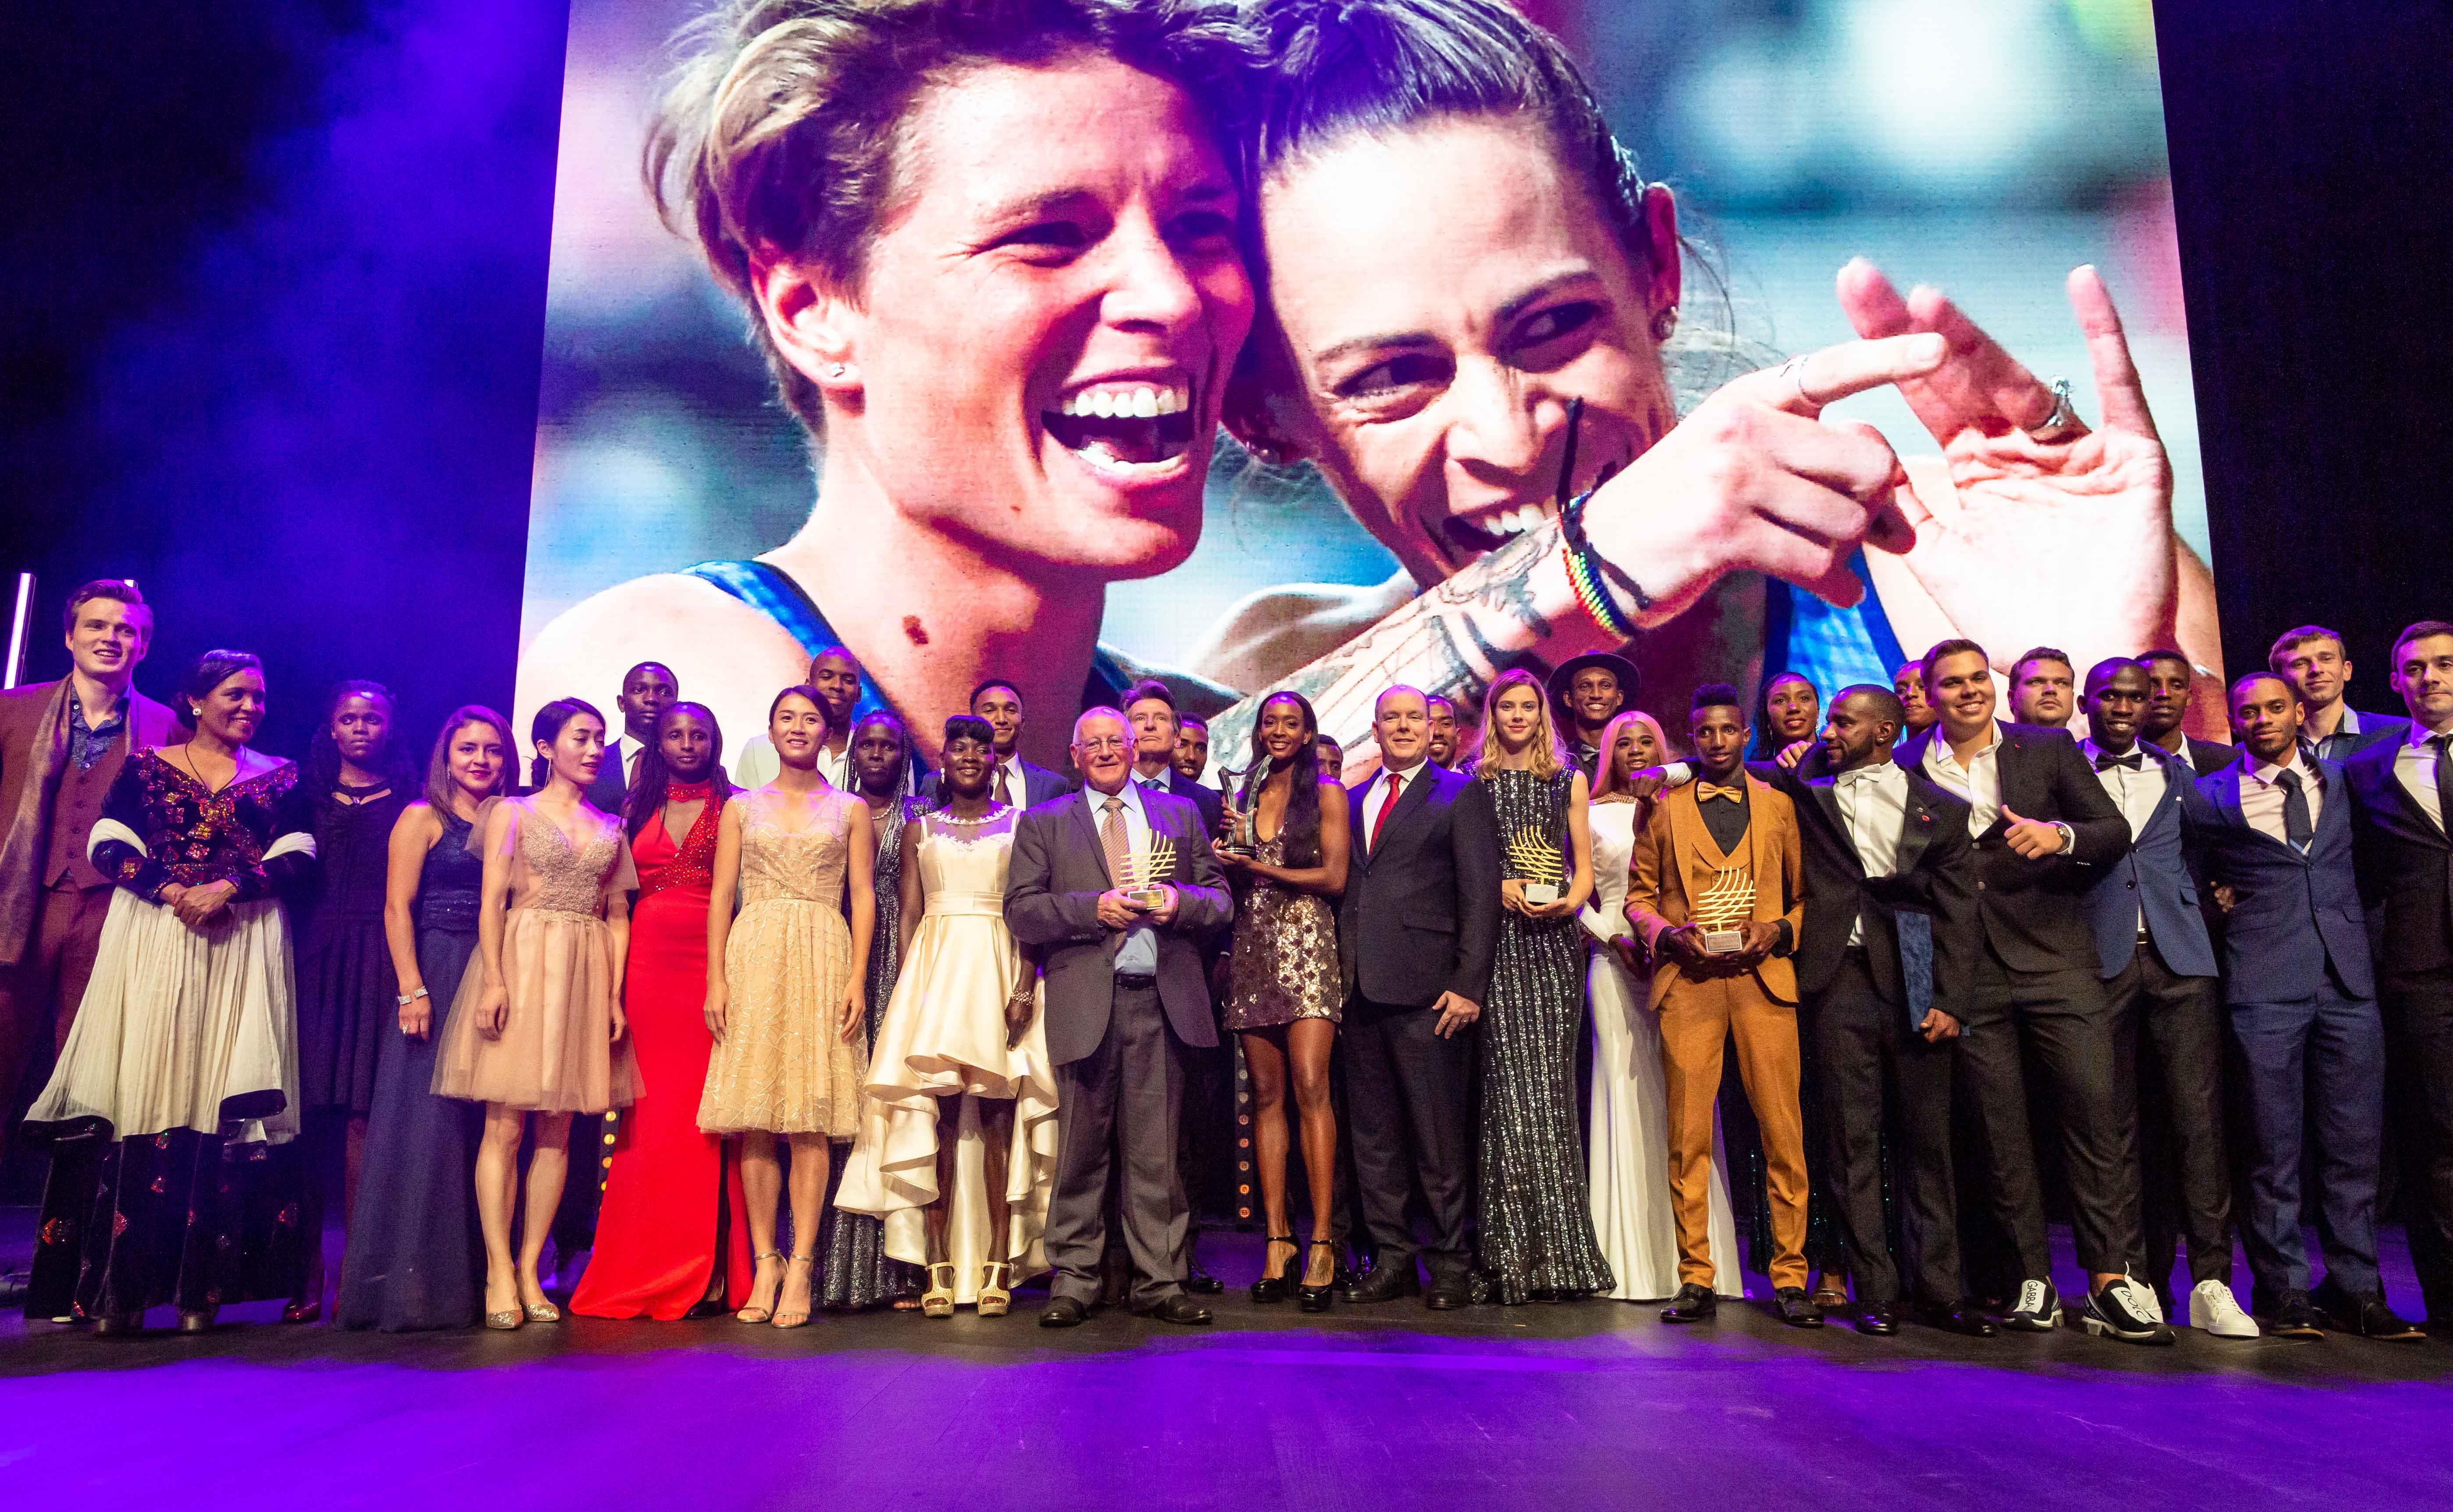 All of the award winners at the World Athletics Awards 2019 (Dan Vernon)